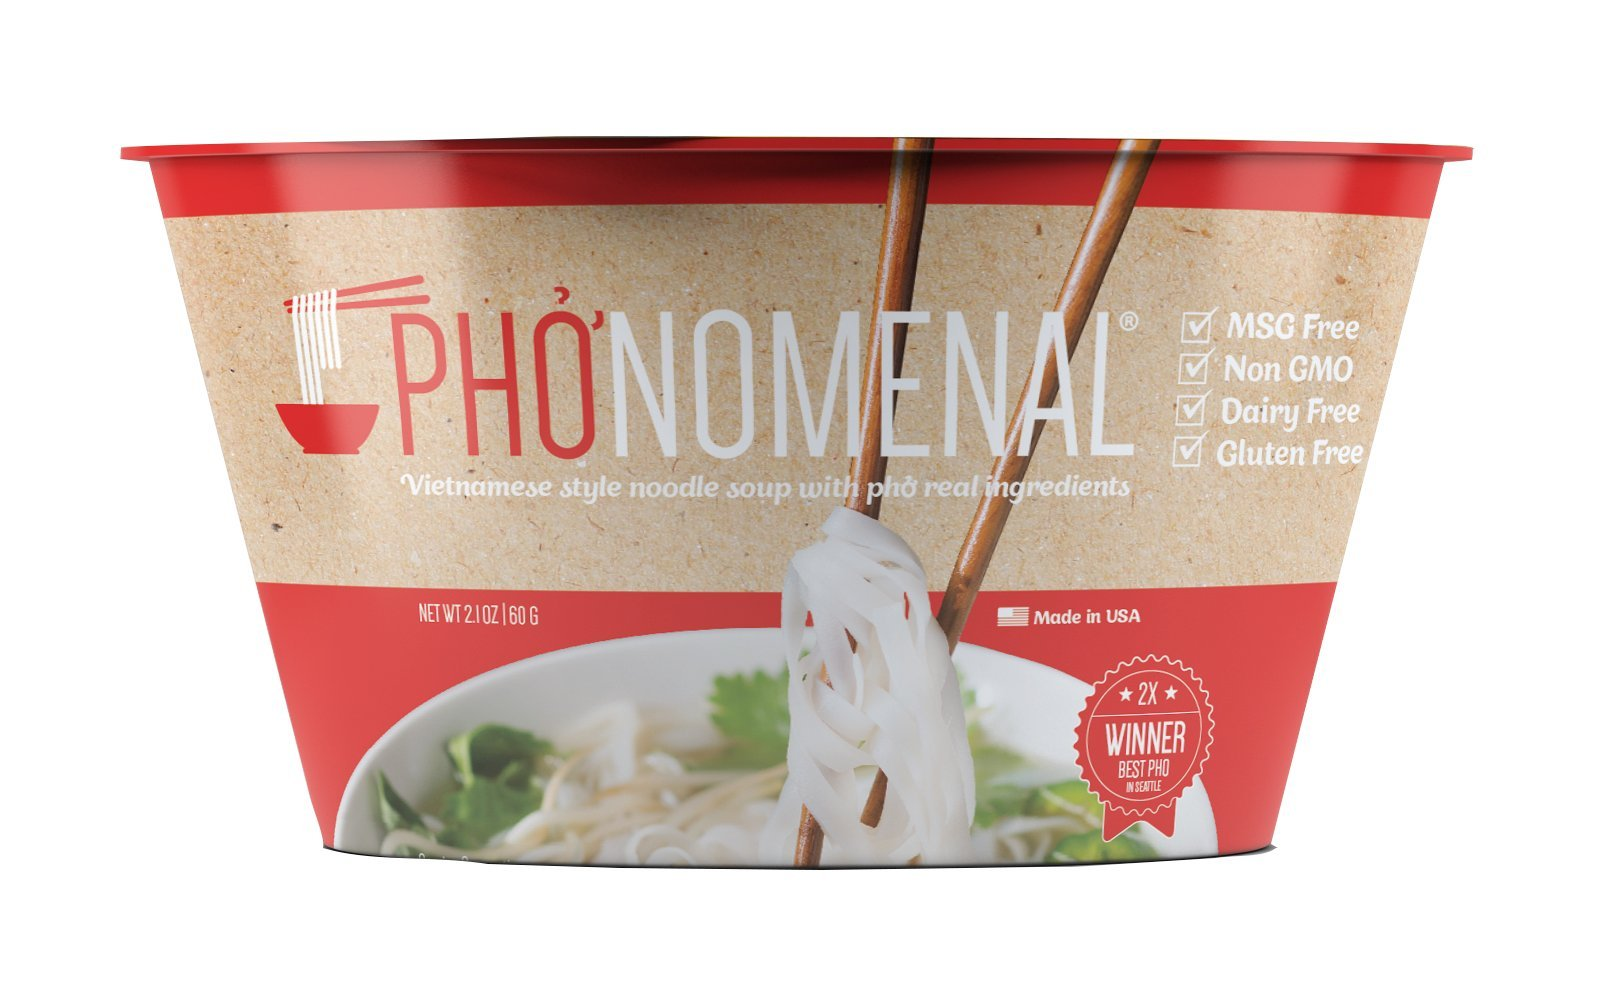 Pho'nomenal Instant phở bò, Vietnamese Beef Noodle Soup, Non GMO, Gluten Free, 6 Bowl Pack by Pho'nomenal